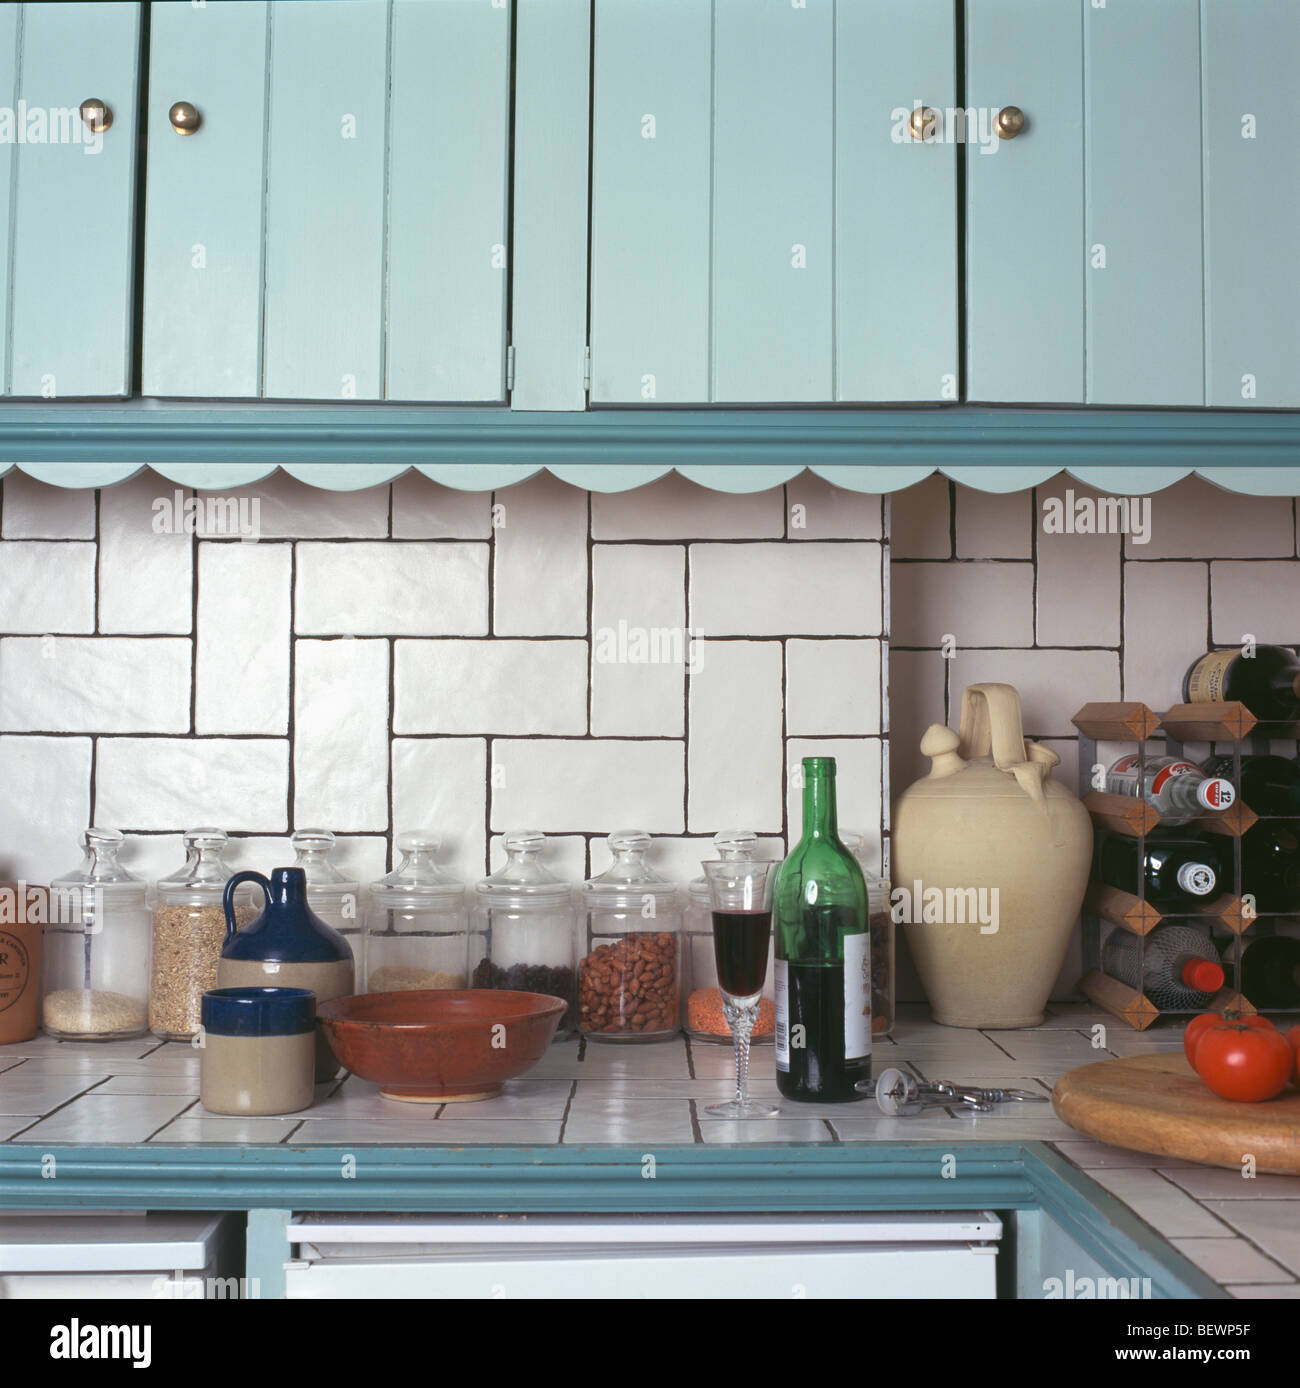 Arbeitsplatten Küche Türkis Kitchen Details Tiling Stockfotos And Kitchen Details Tiling